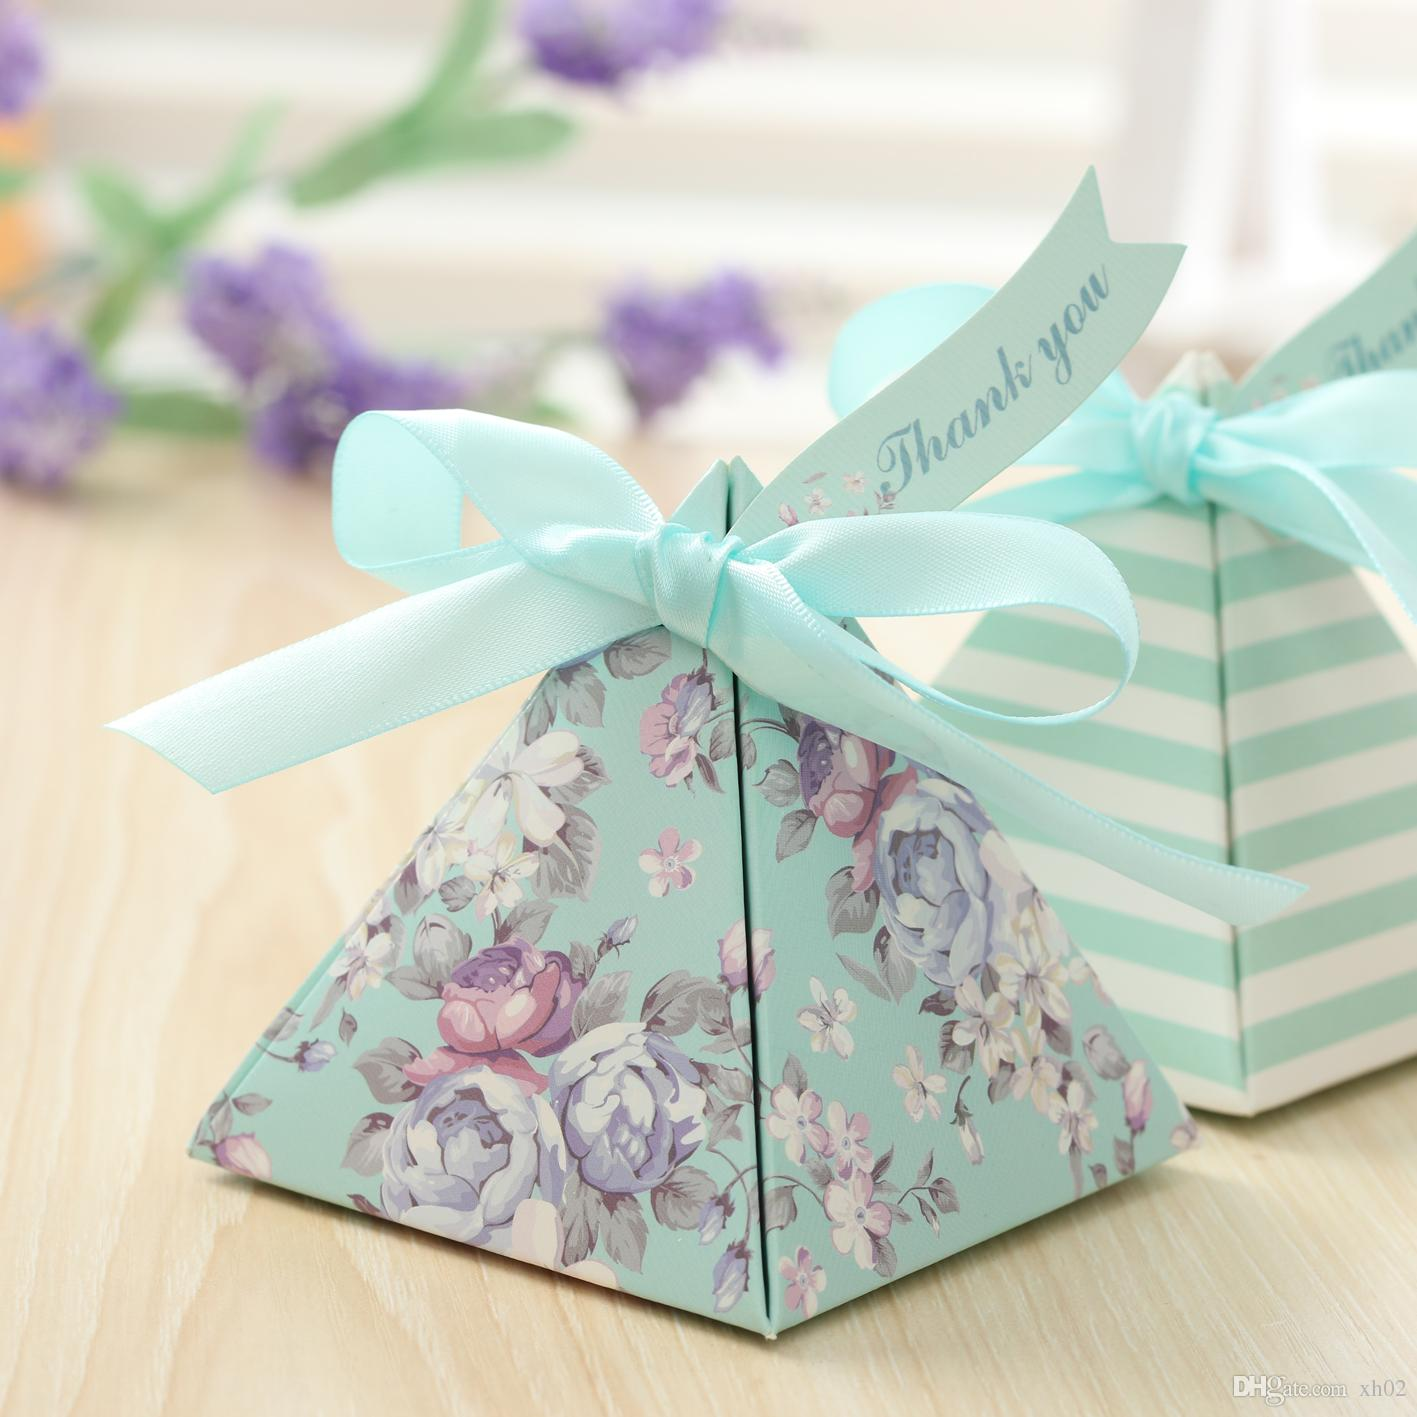 Blue Flower Gift Box Striped Triangular Pyramid Wedding Favors Candy Boxes Party Chocolate Gifts Ribbons Tags Chinese Favor Cheap